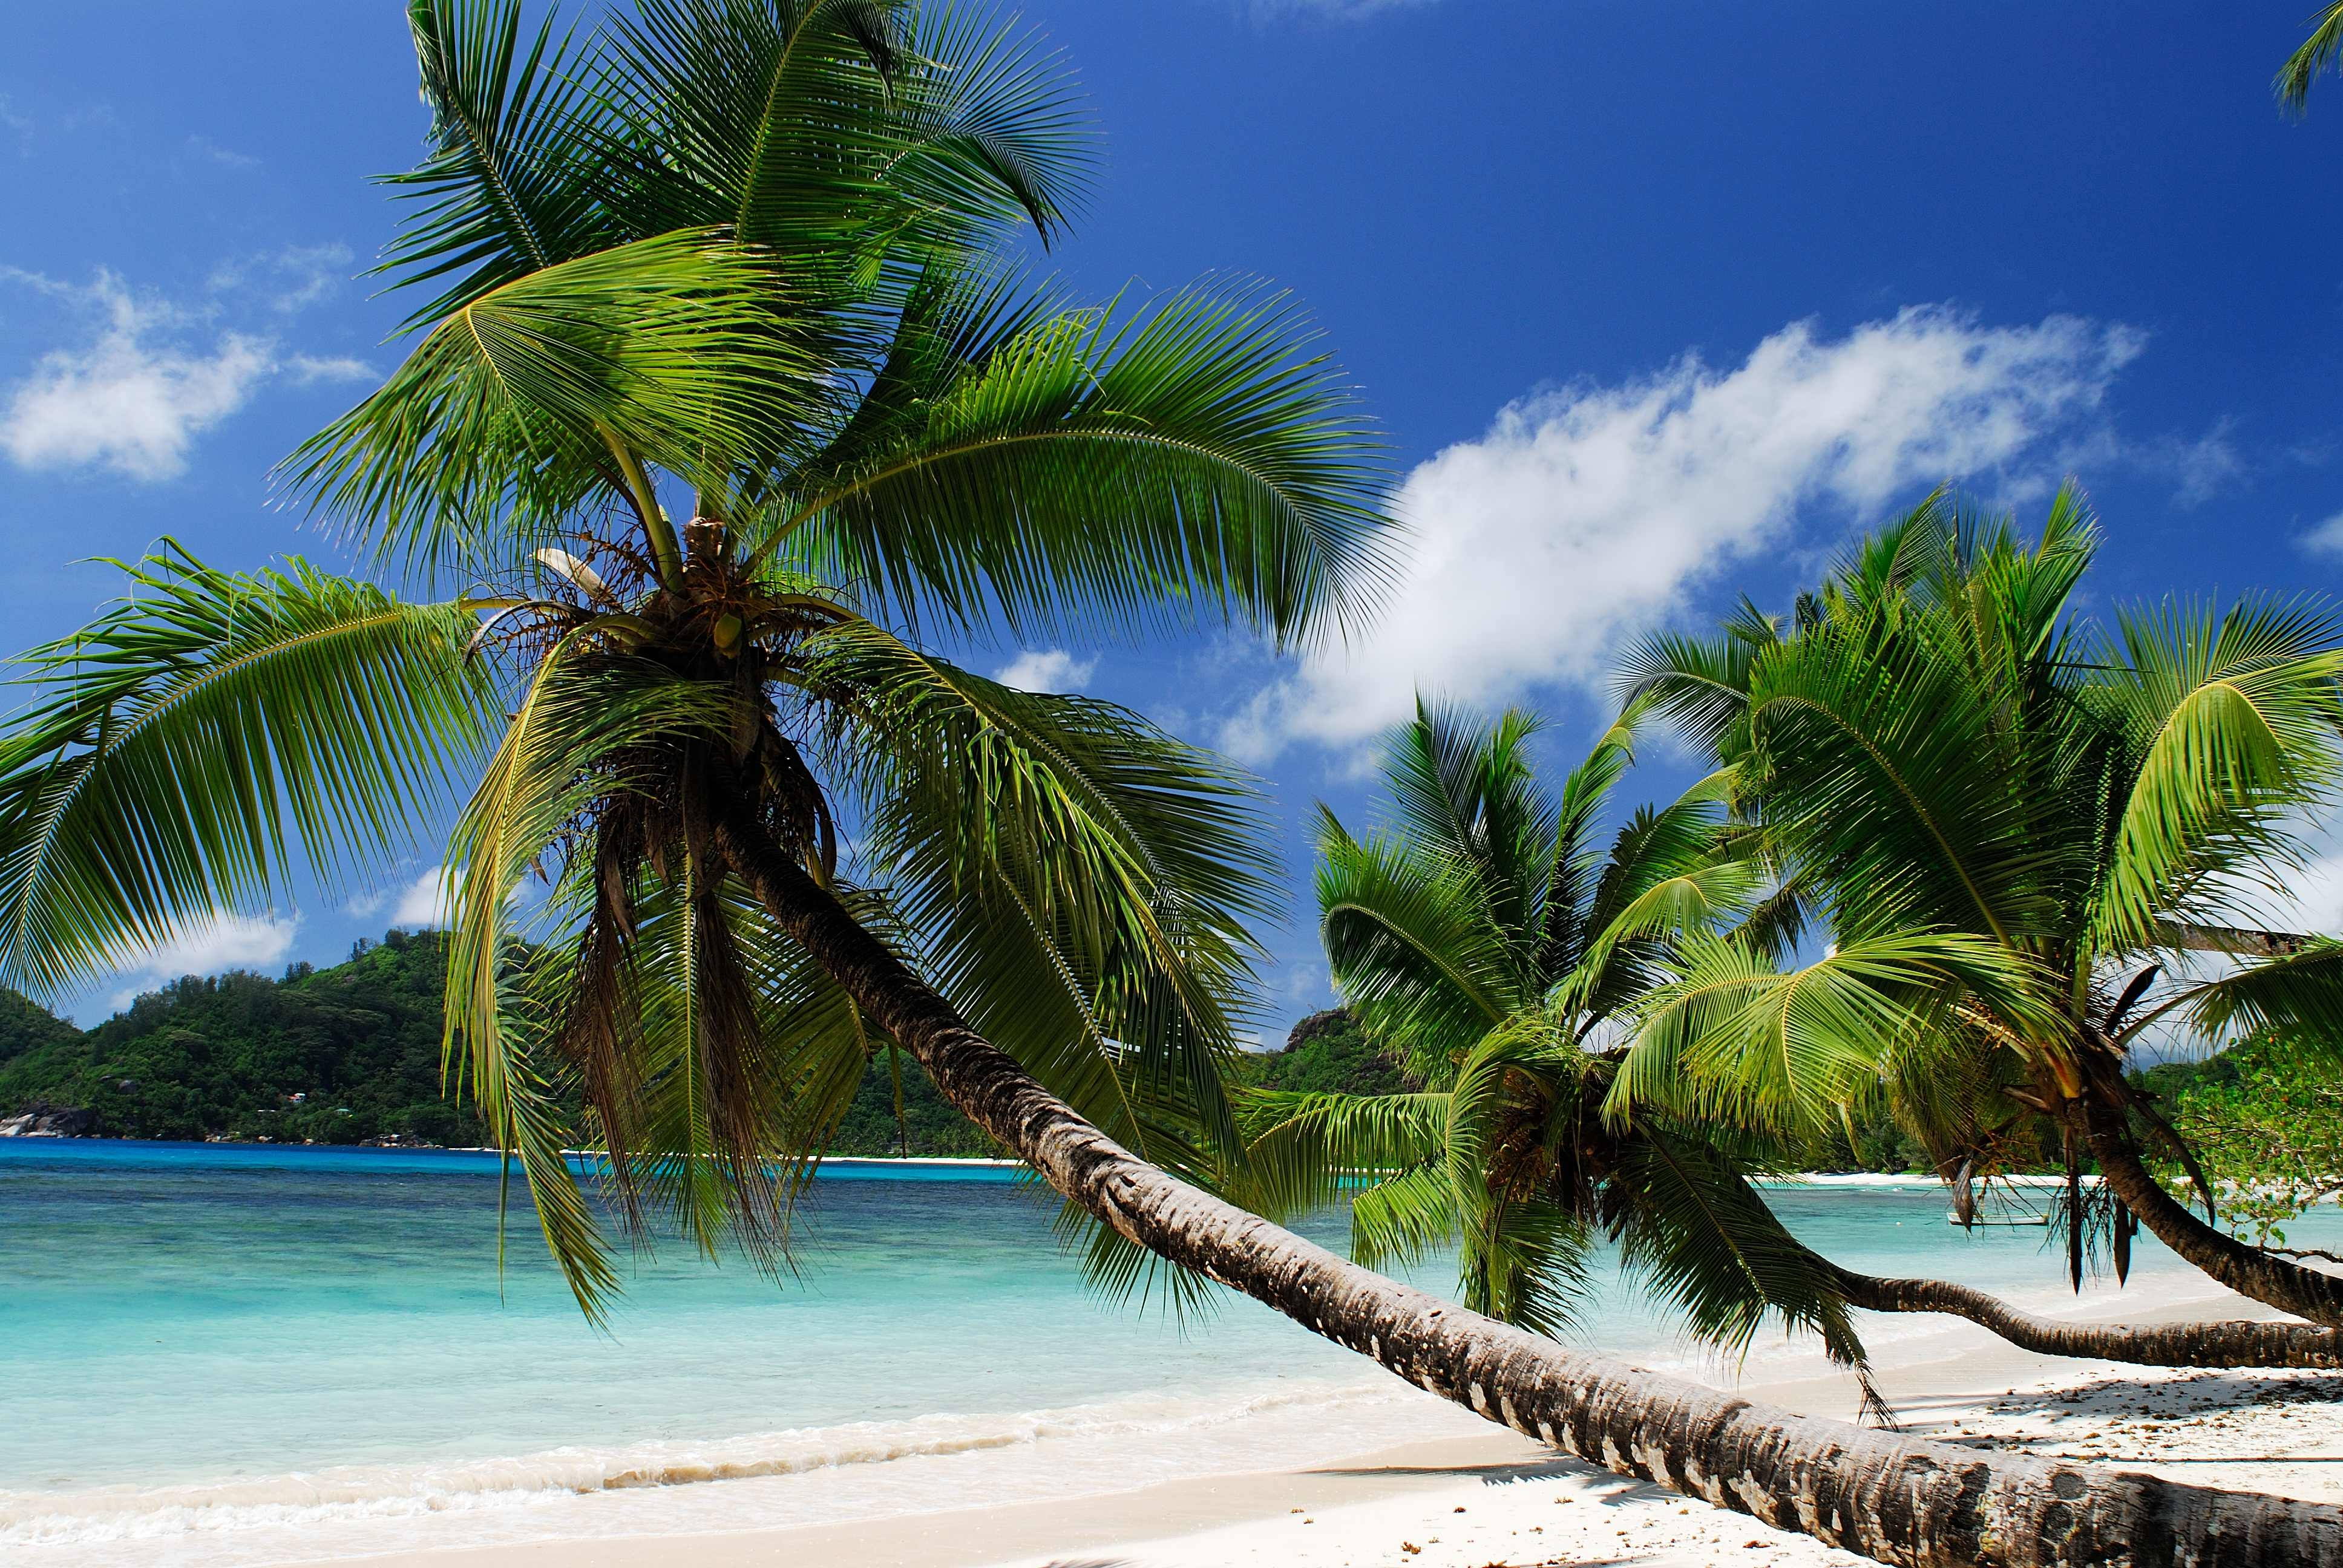 147136 download wallpaper Nature, Beach, Sea, Sand, Palms, Tropics, Sandy screensavers and pictures for free